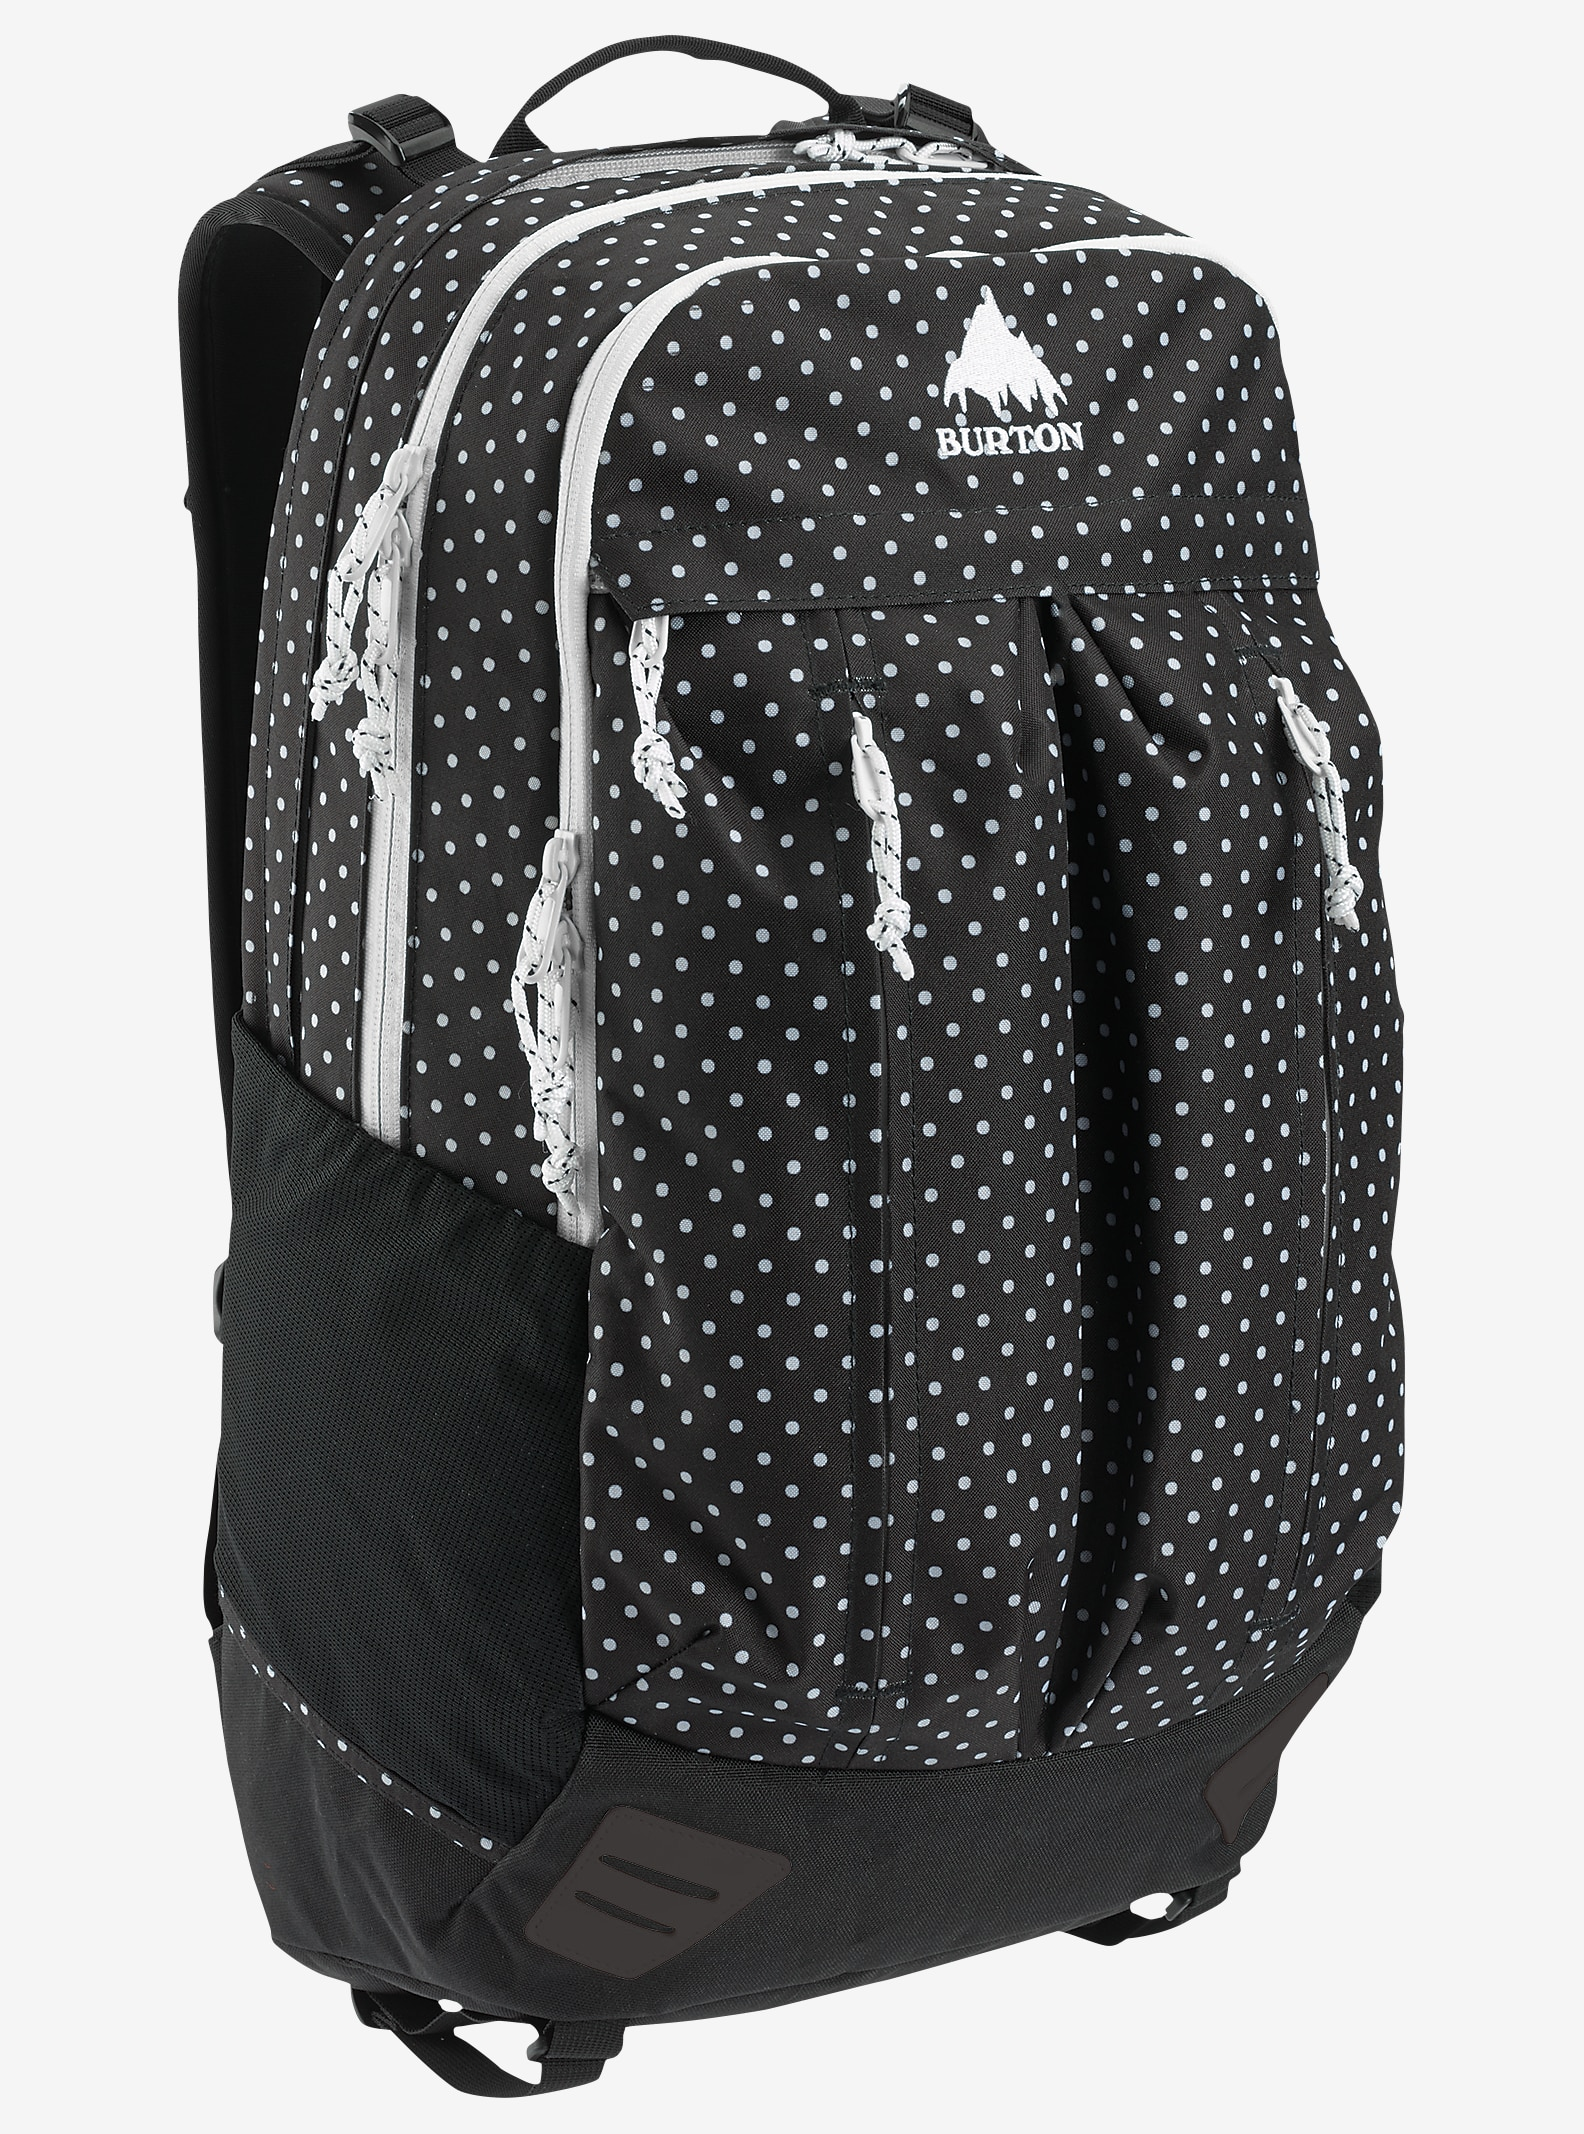 Burton Bravo Backpack shown in Black Polka Dot